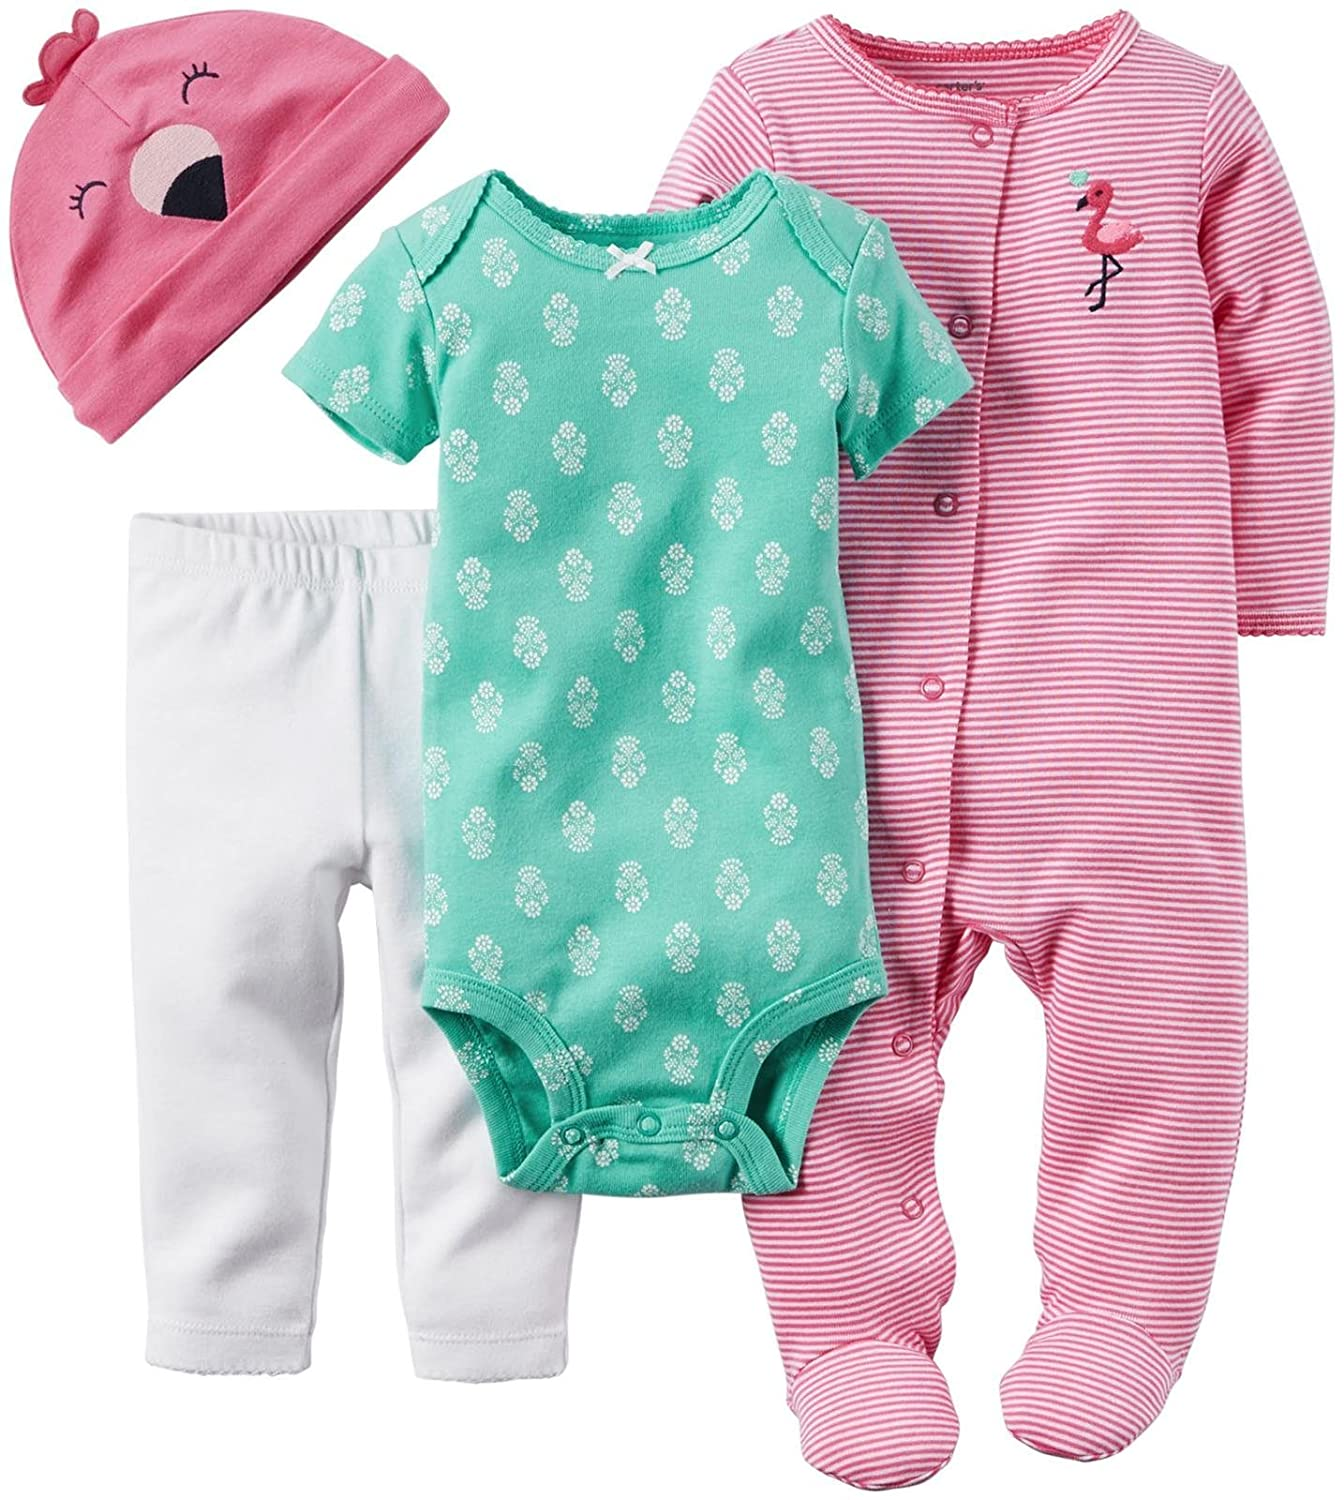 Carter's Baby Girls' Daddy's Sweetheart 4-Piece Layette Set Carter' s 1239310